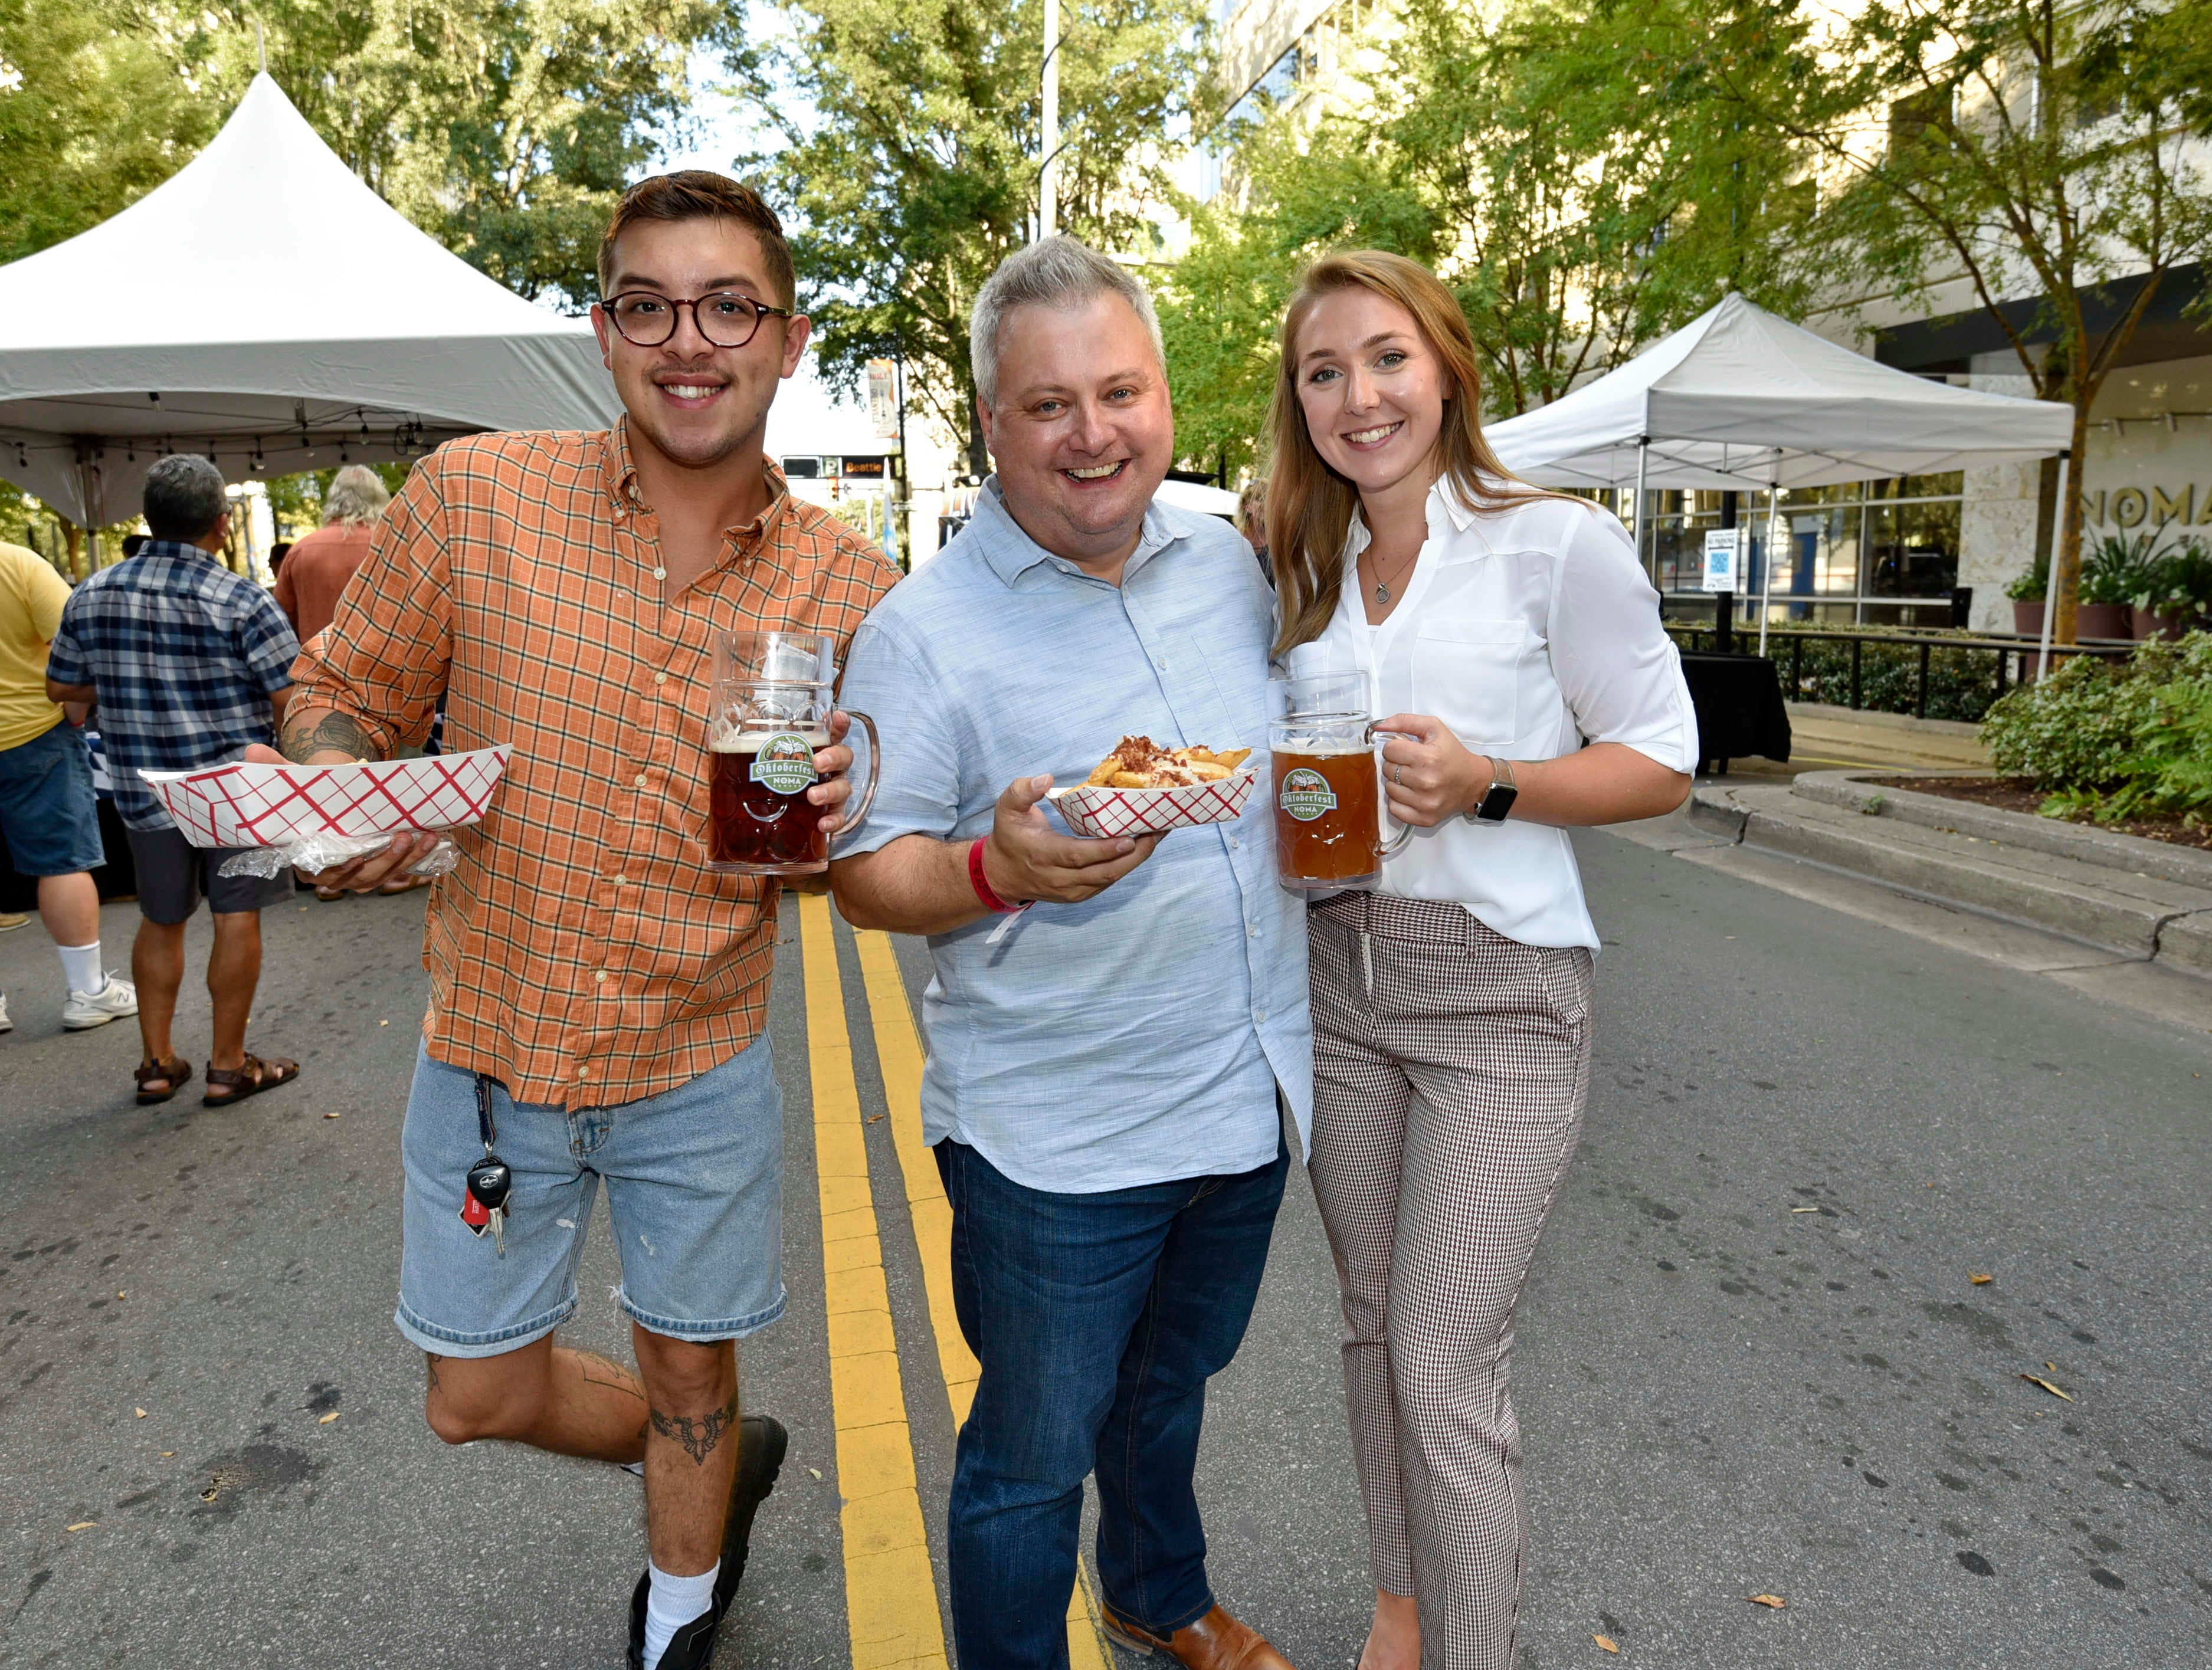 Matthew Gutierrez, Jonathan Brashier, and Erin Ogletree attend Oktoberfest which kicked off at NOMA Square in downtown Greenville Thursday, Oct. 4,  2018.